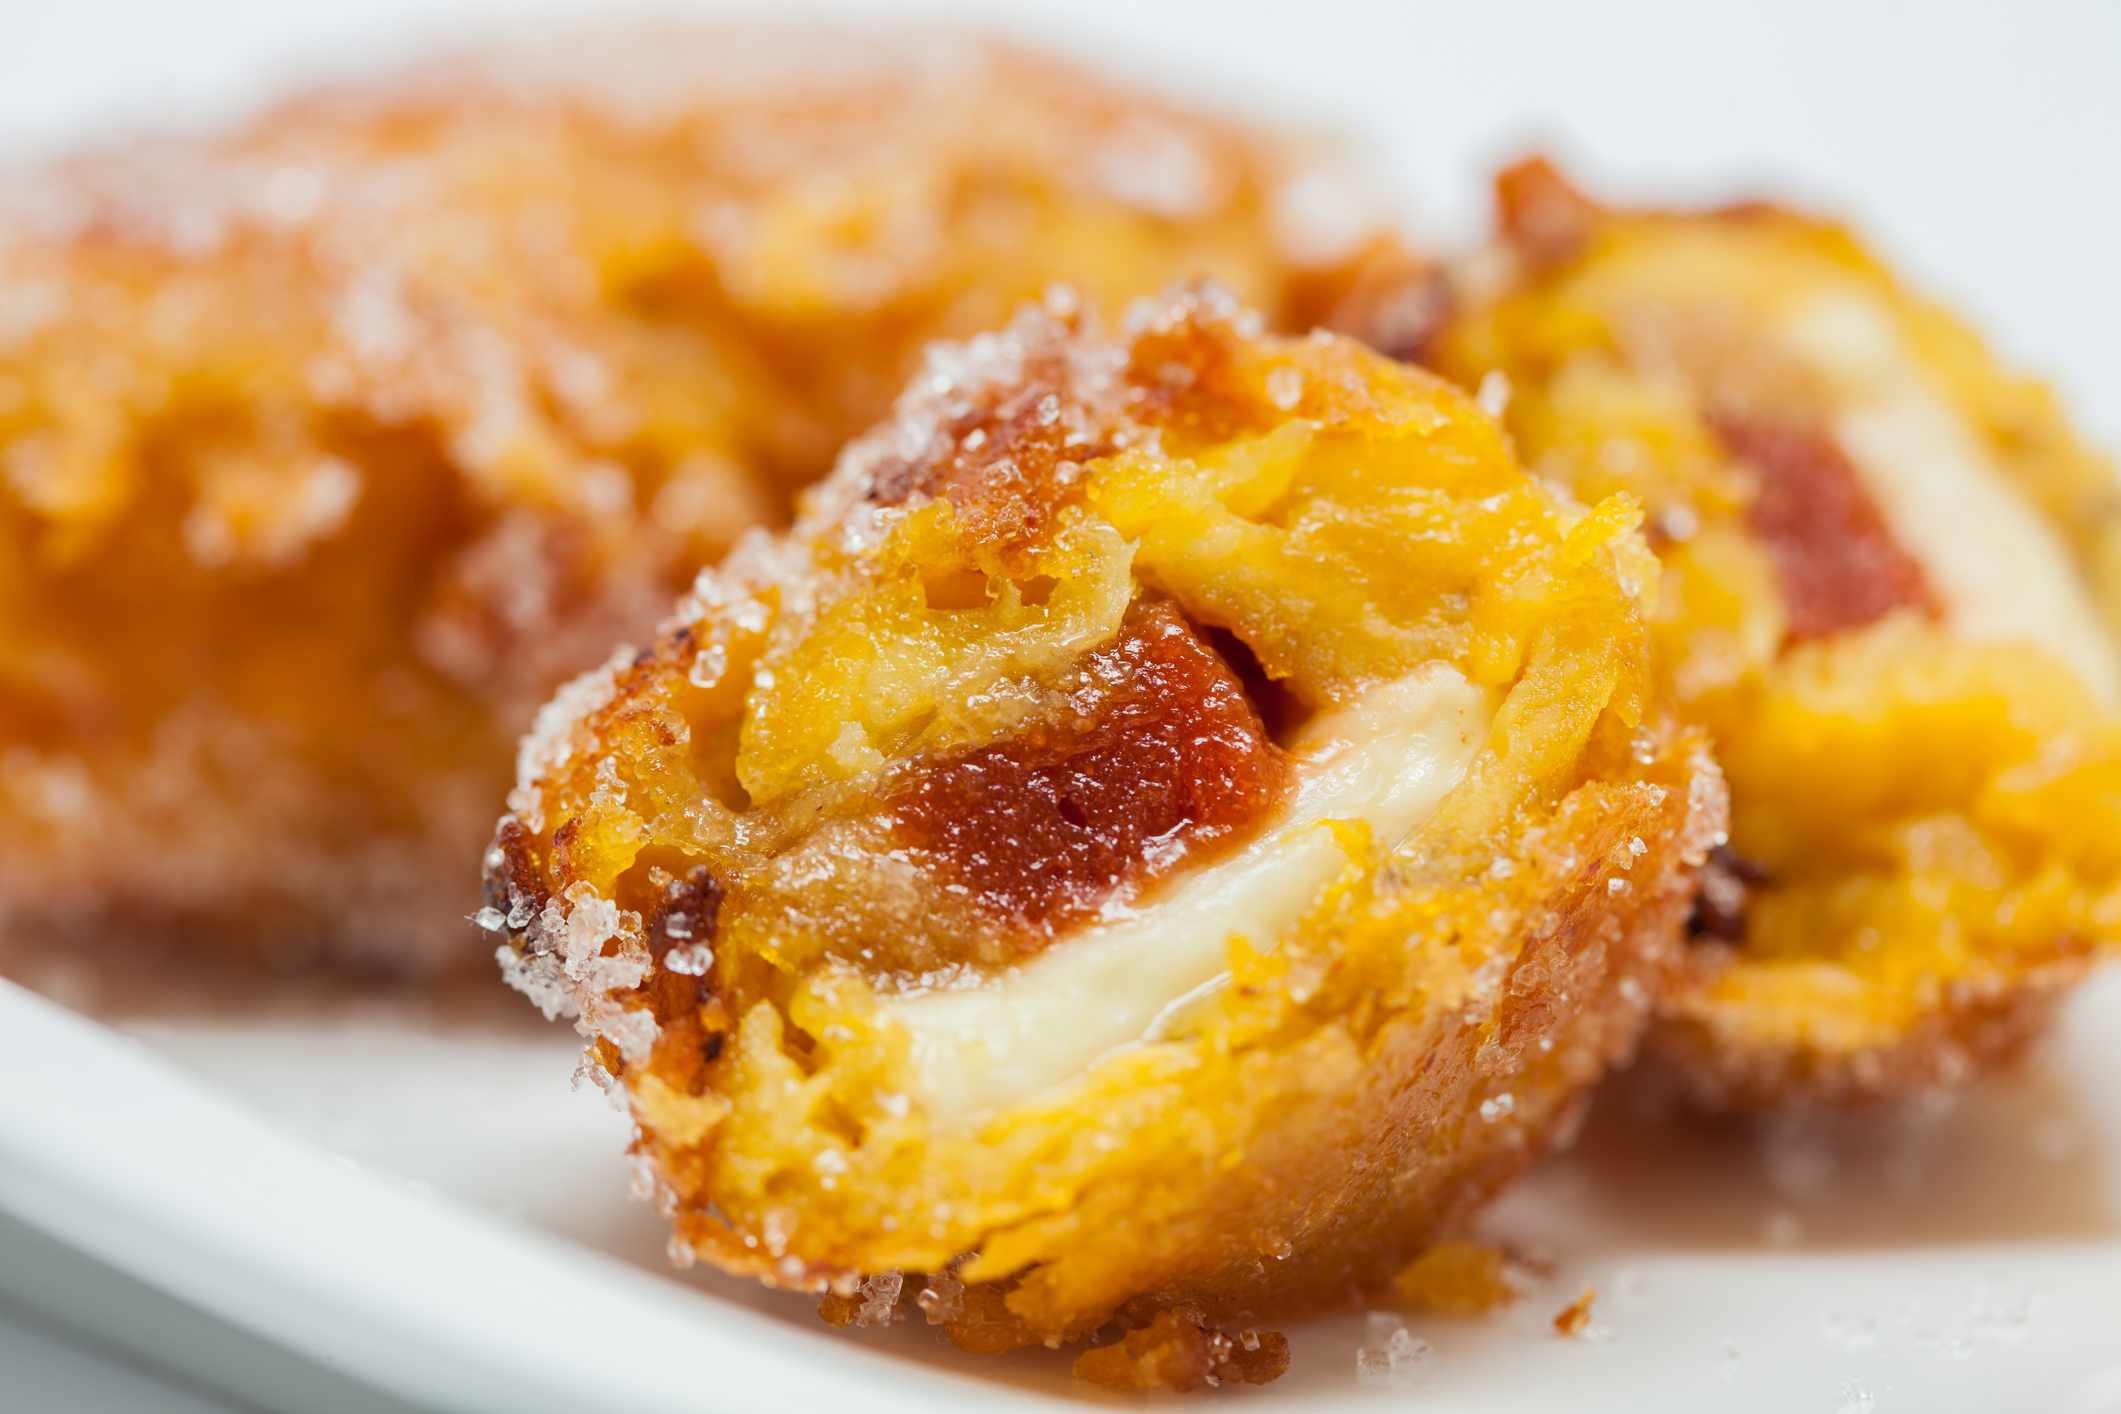 Close-up of aborrajados, fried sweet plantains with cheese on a plate